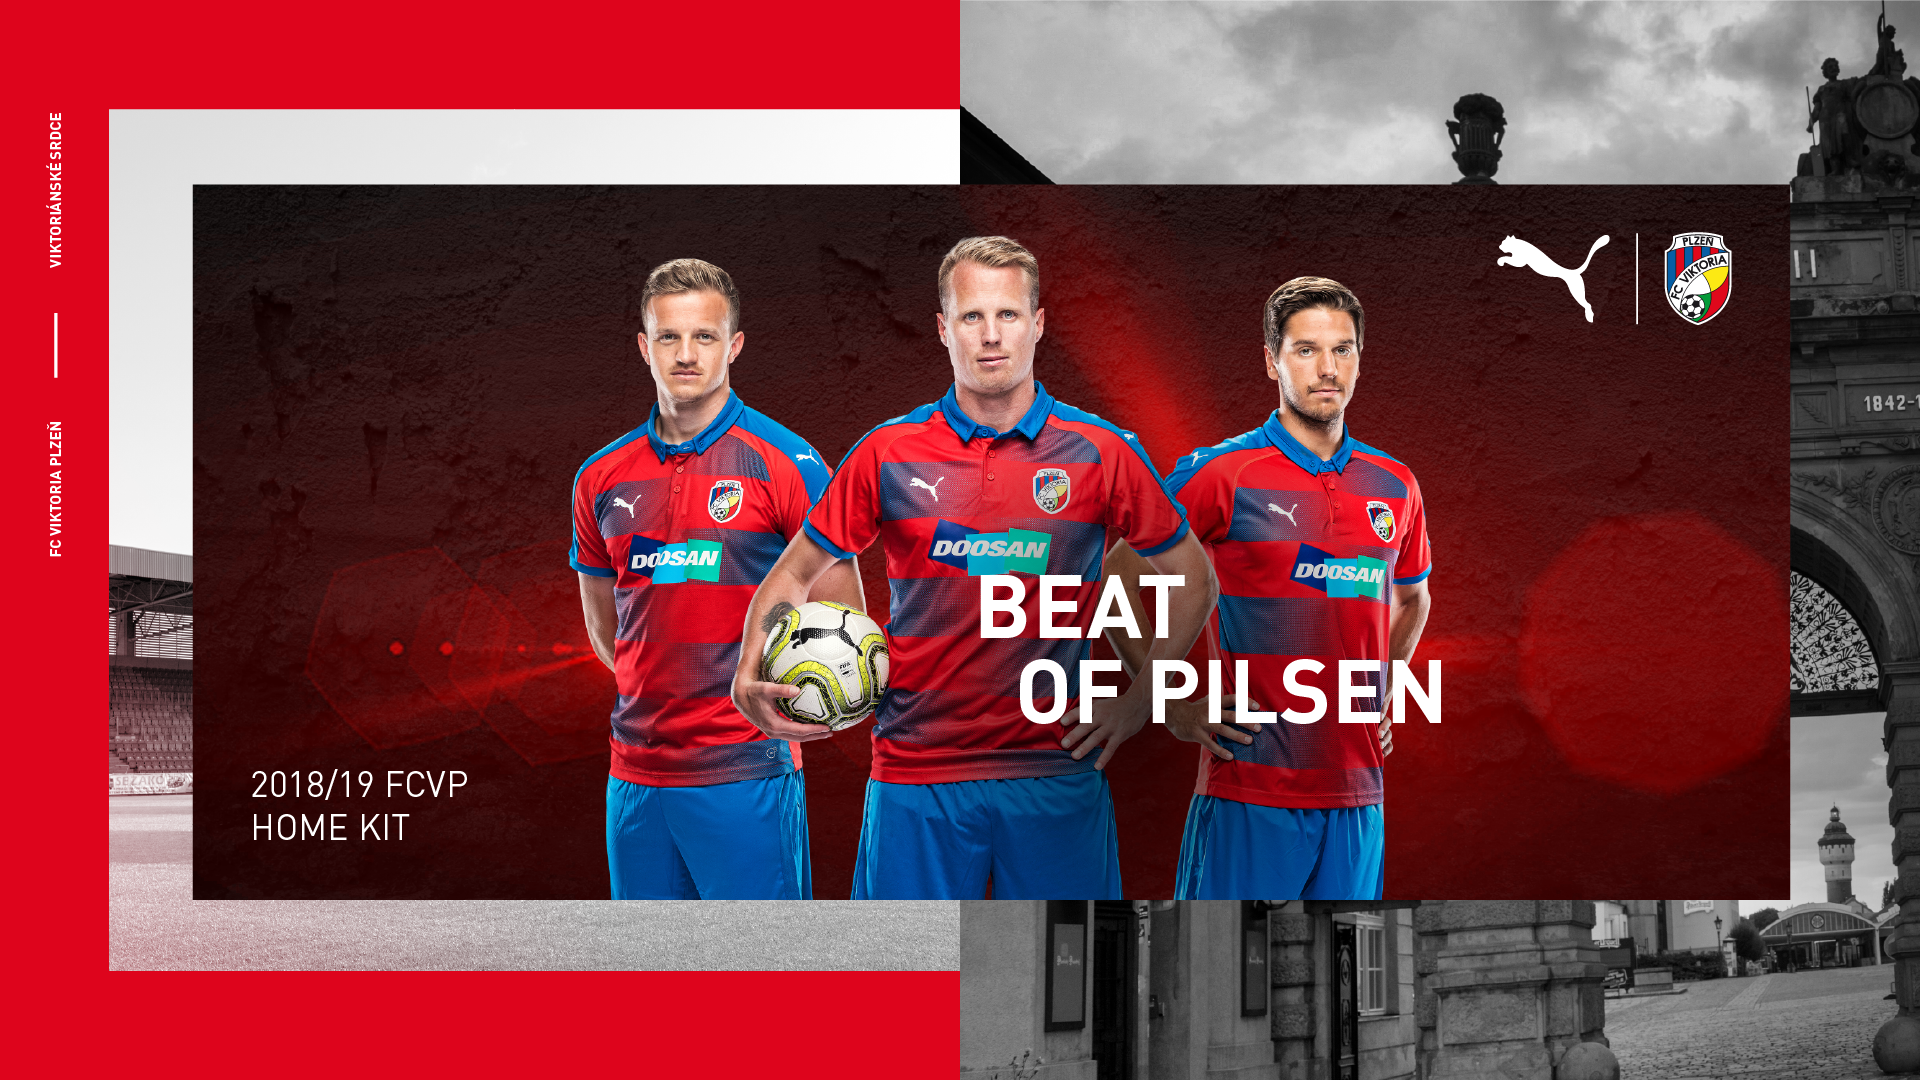 Elegance, tradition, functionality! Viktoria introduces new home kit for 2018/2019